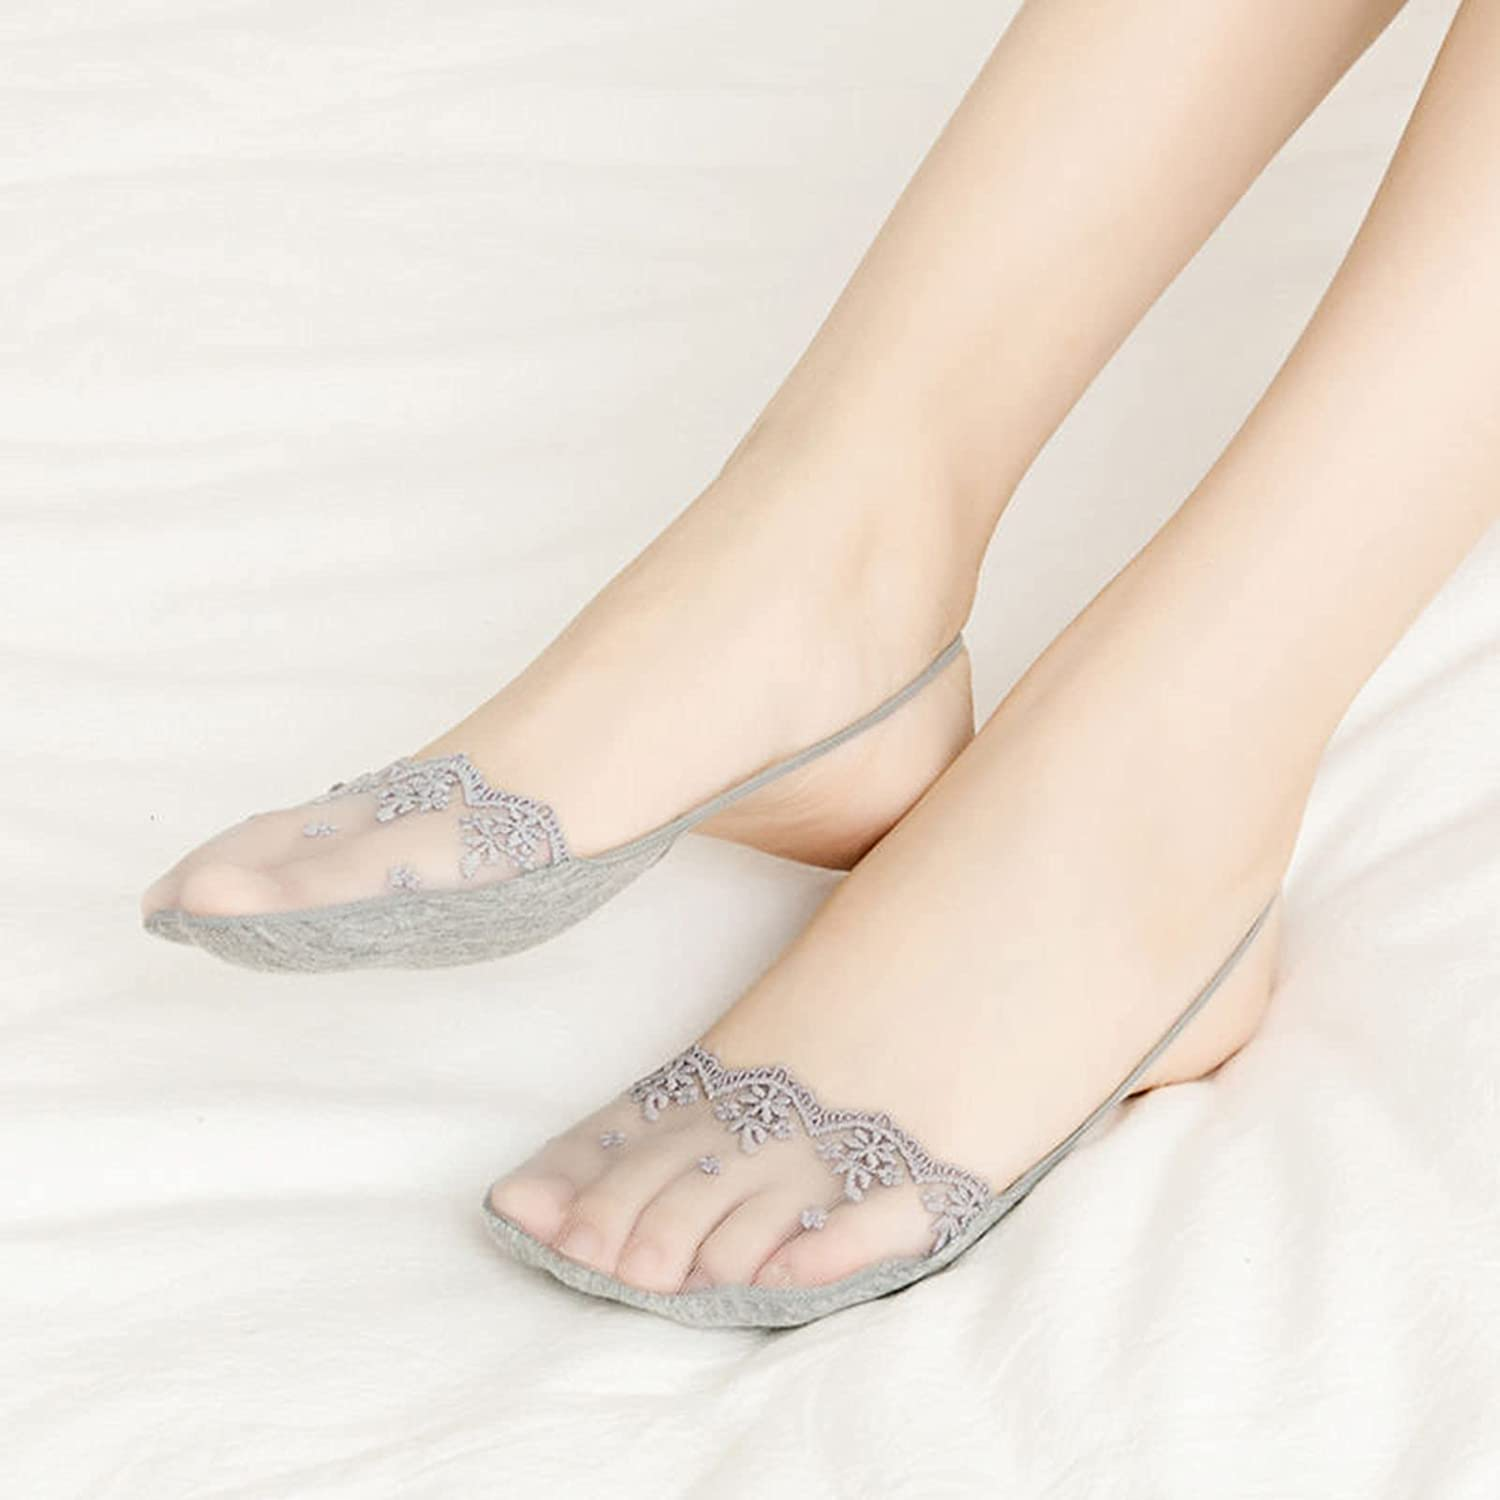 GYJZZW Lace Invisible Sling Socks,Half Ship Socks with Sling Back,Cool Breathable No Show Padded Half Socks